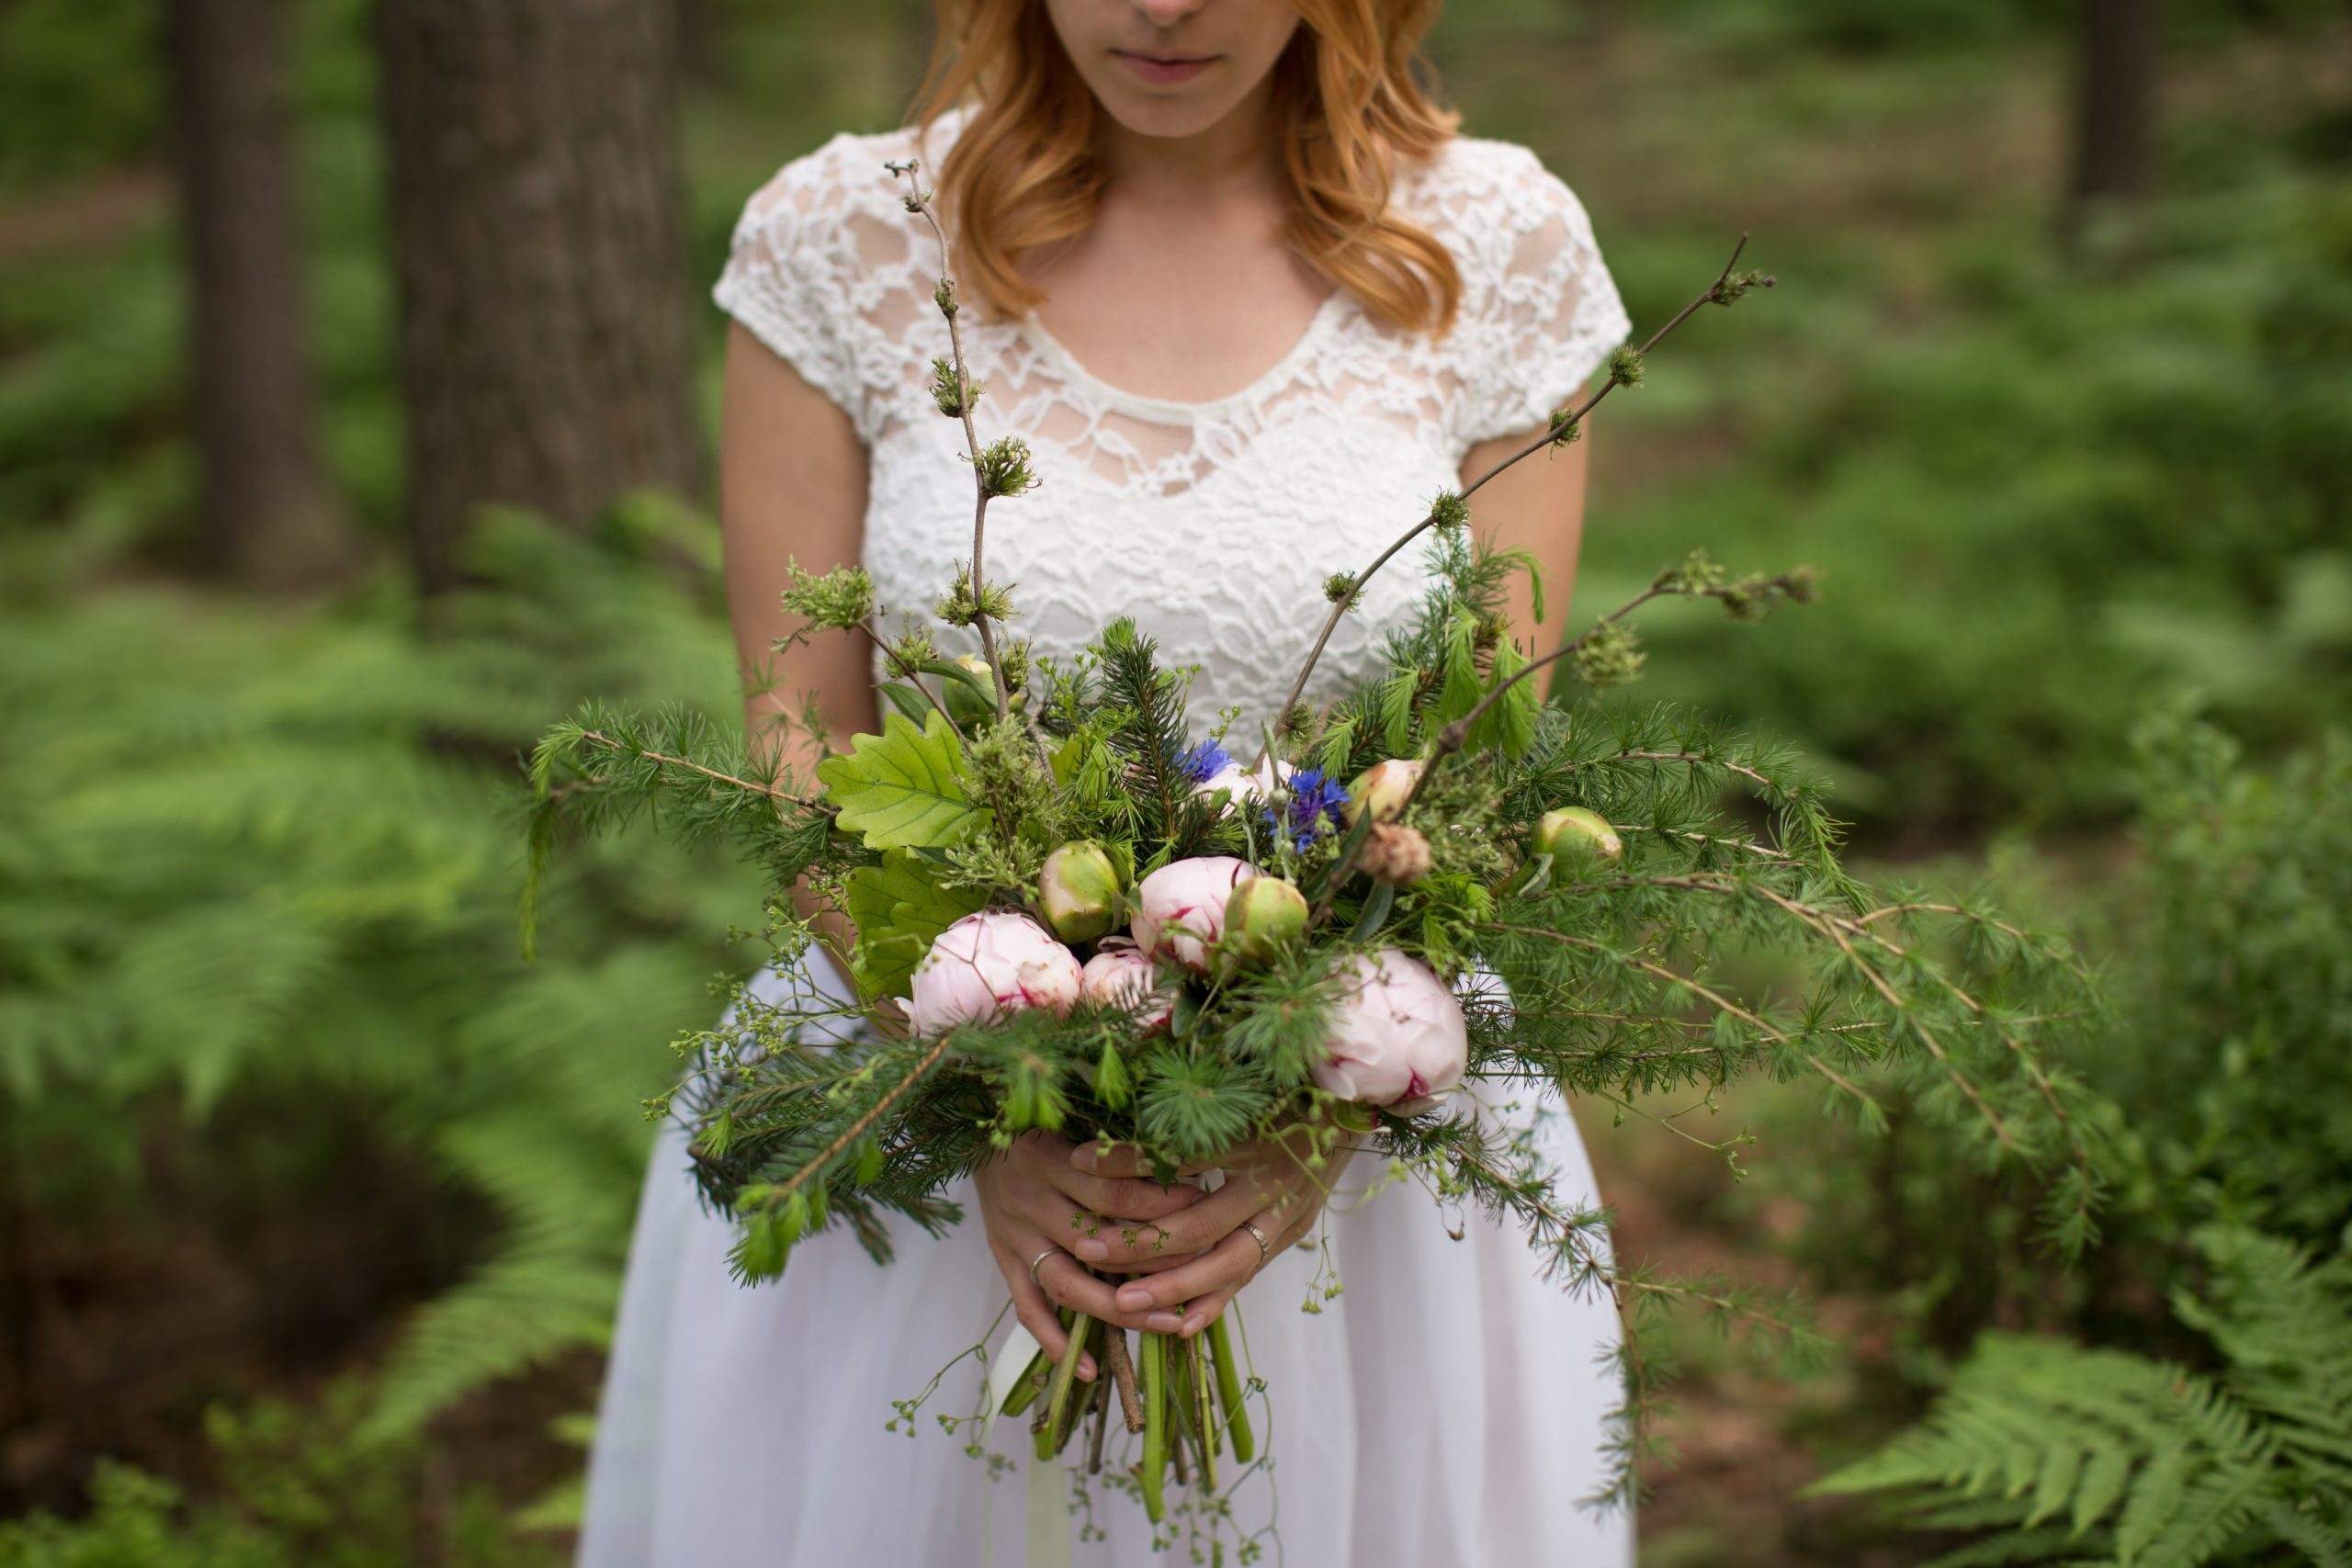 An unedited photo of a bride that is holding her bridal bouquet.